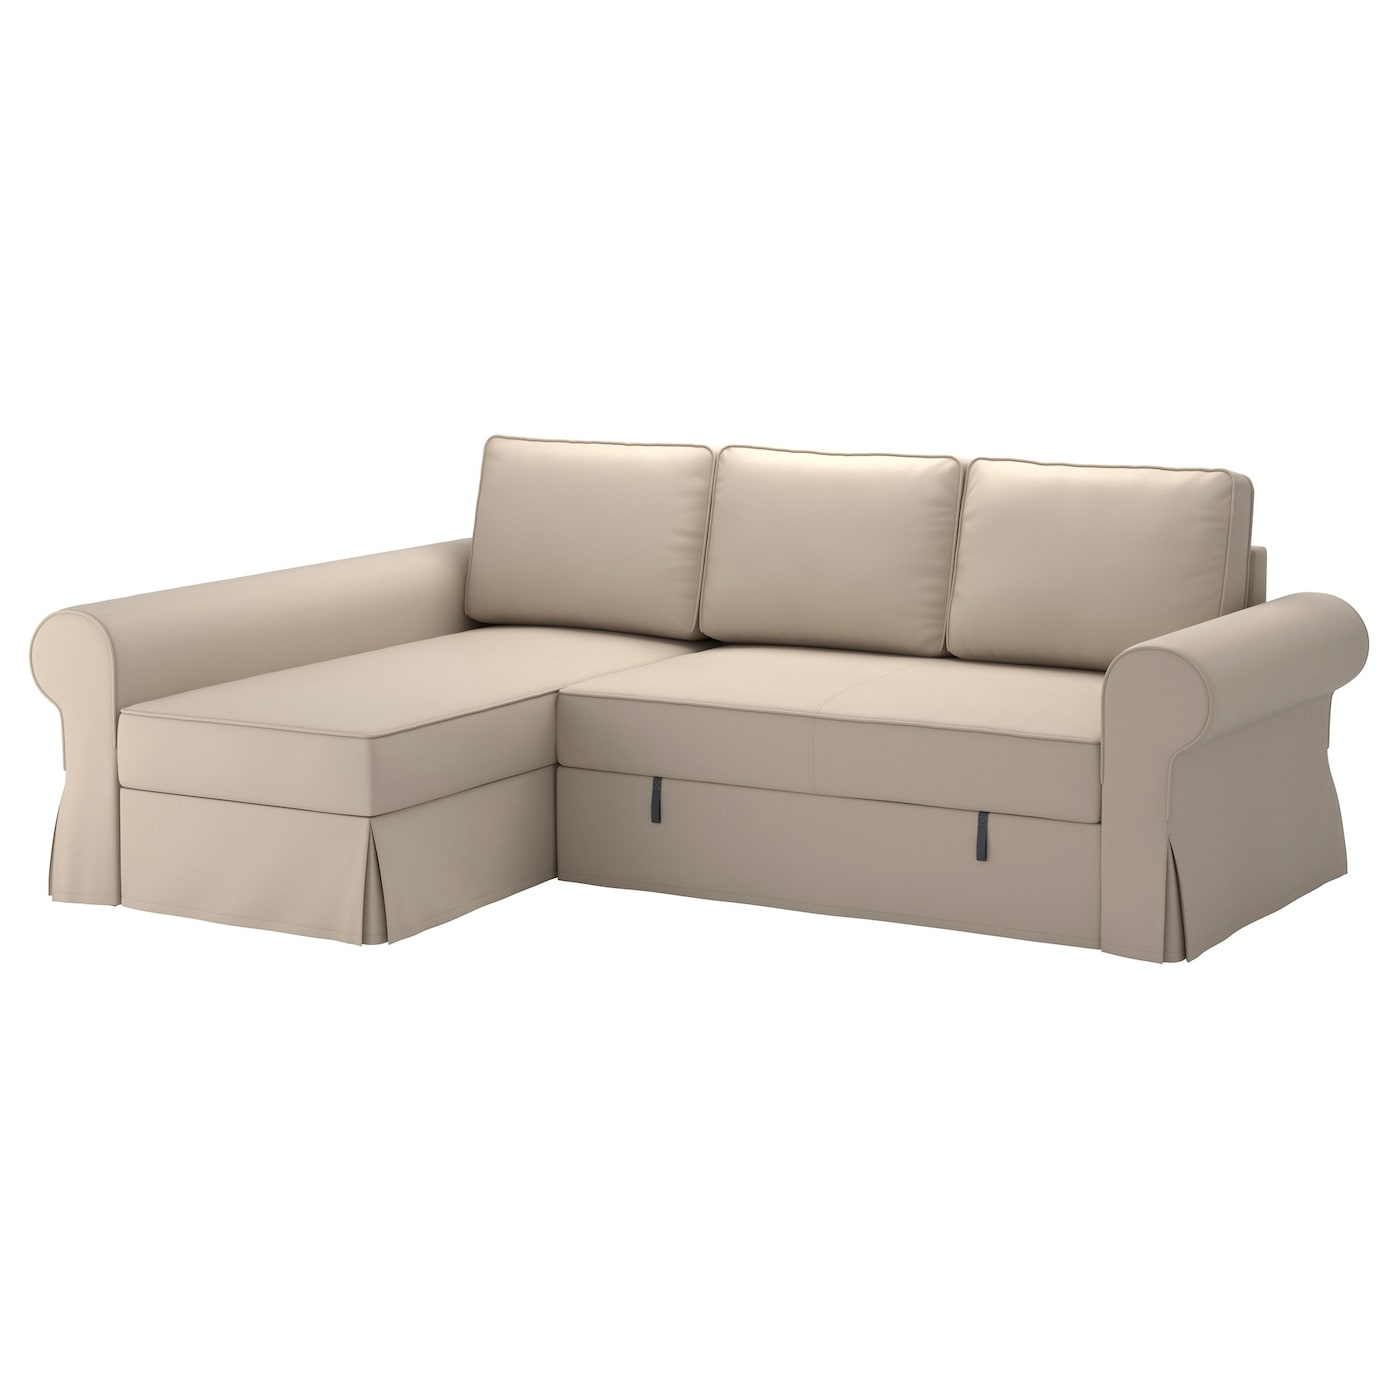 Backabro sofa bed with chaise longue ramna beige ikea Ikea divan beds